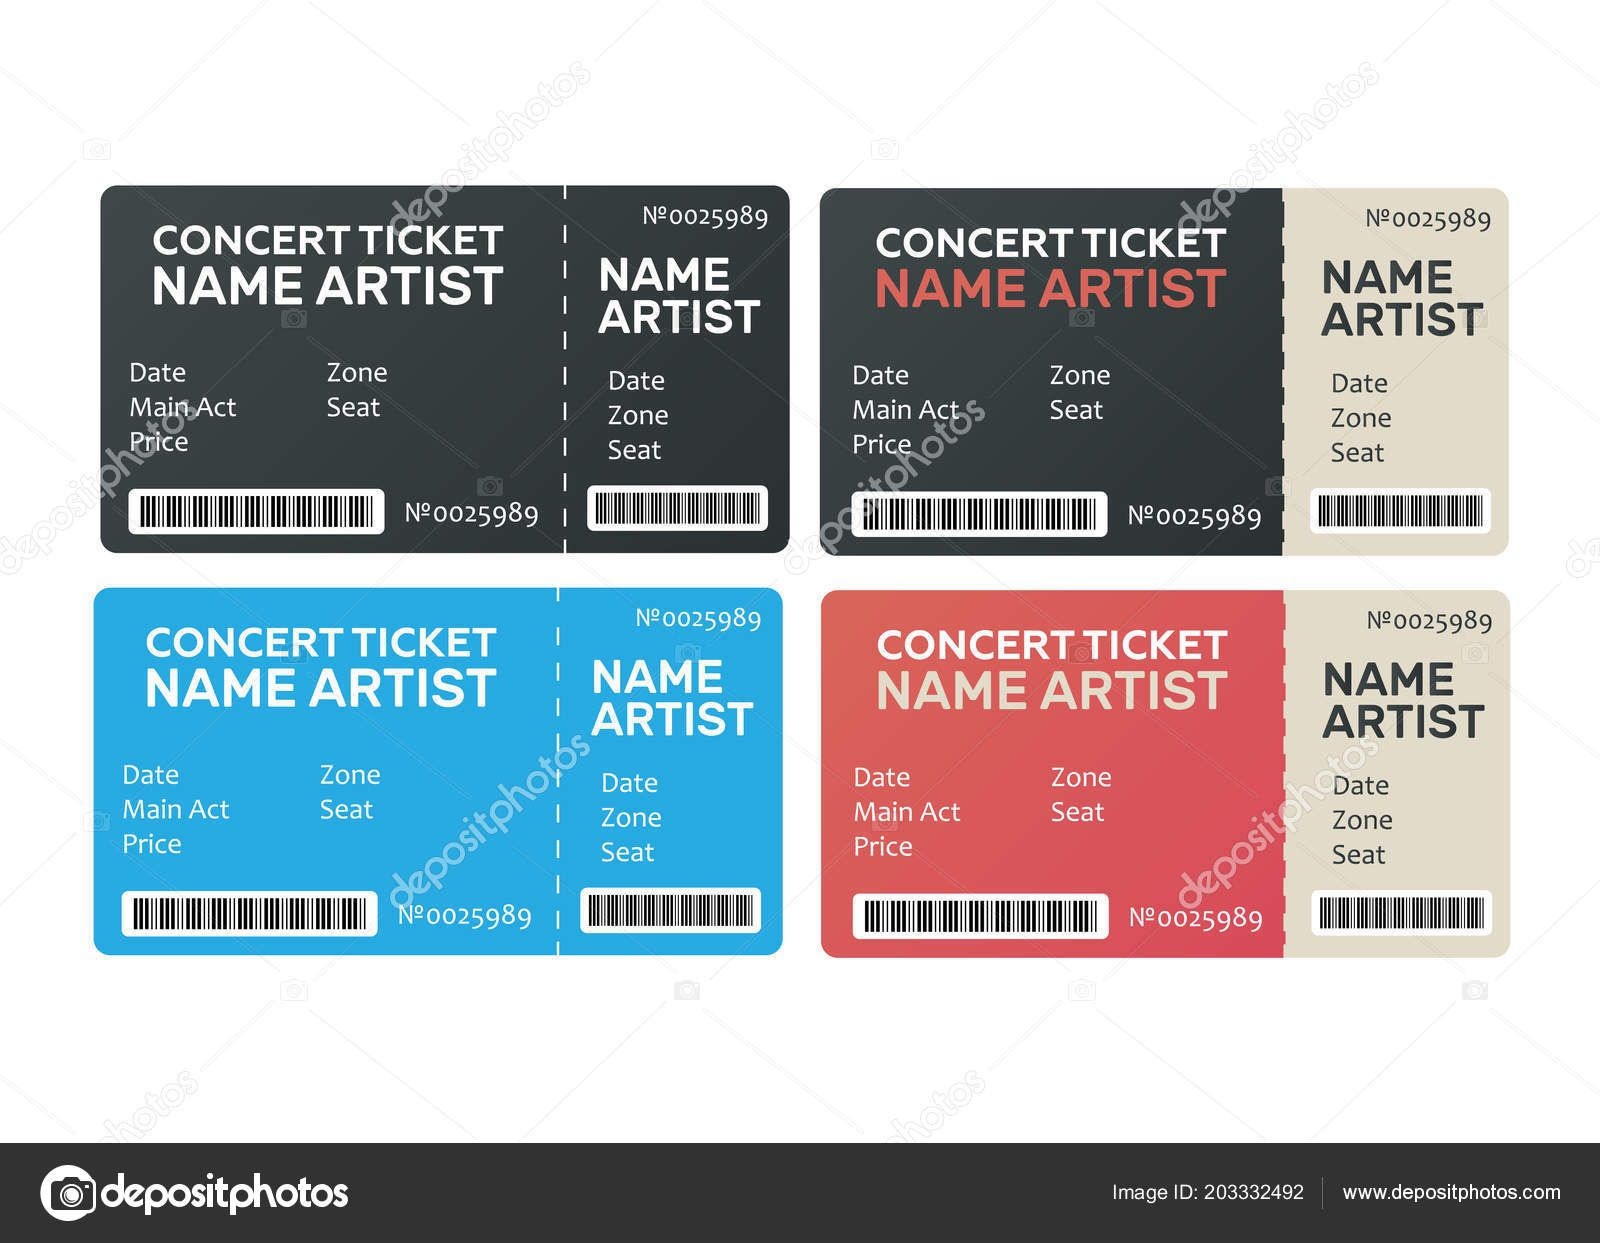 005 Imposing Concert Ticket Template Word Picture  Free MicrosoftFull